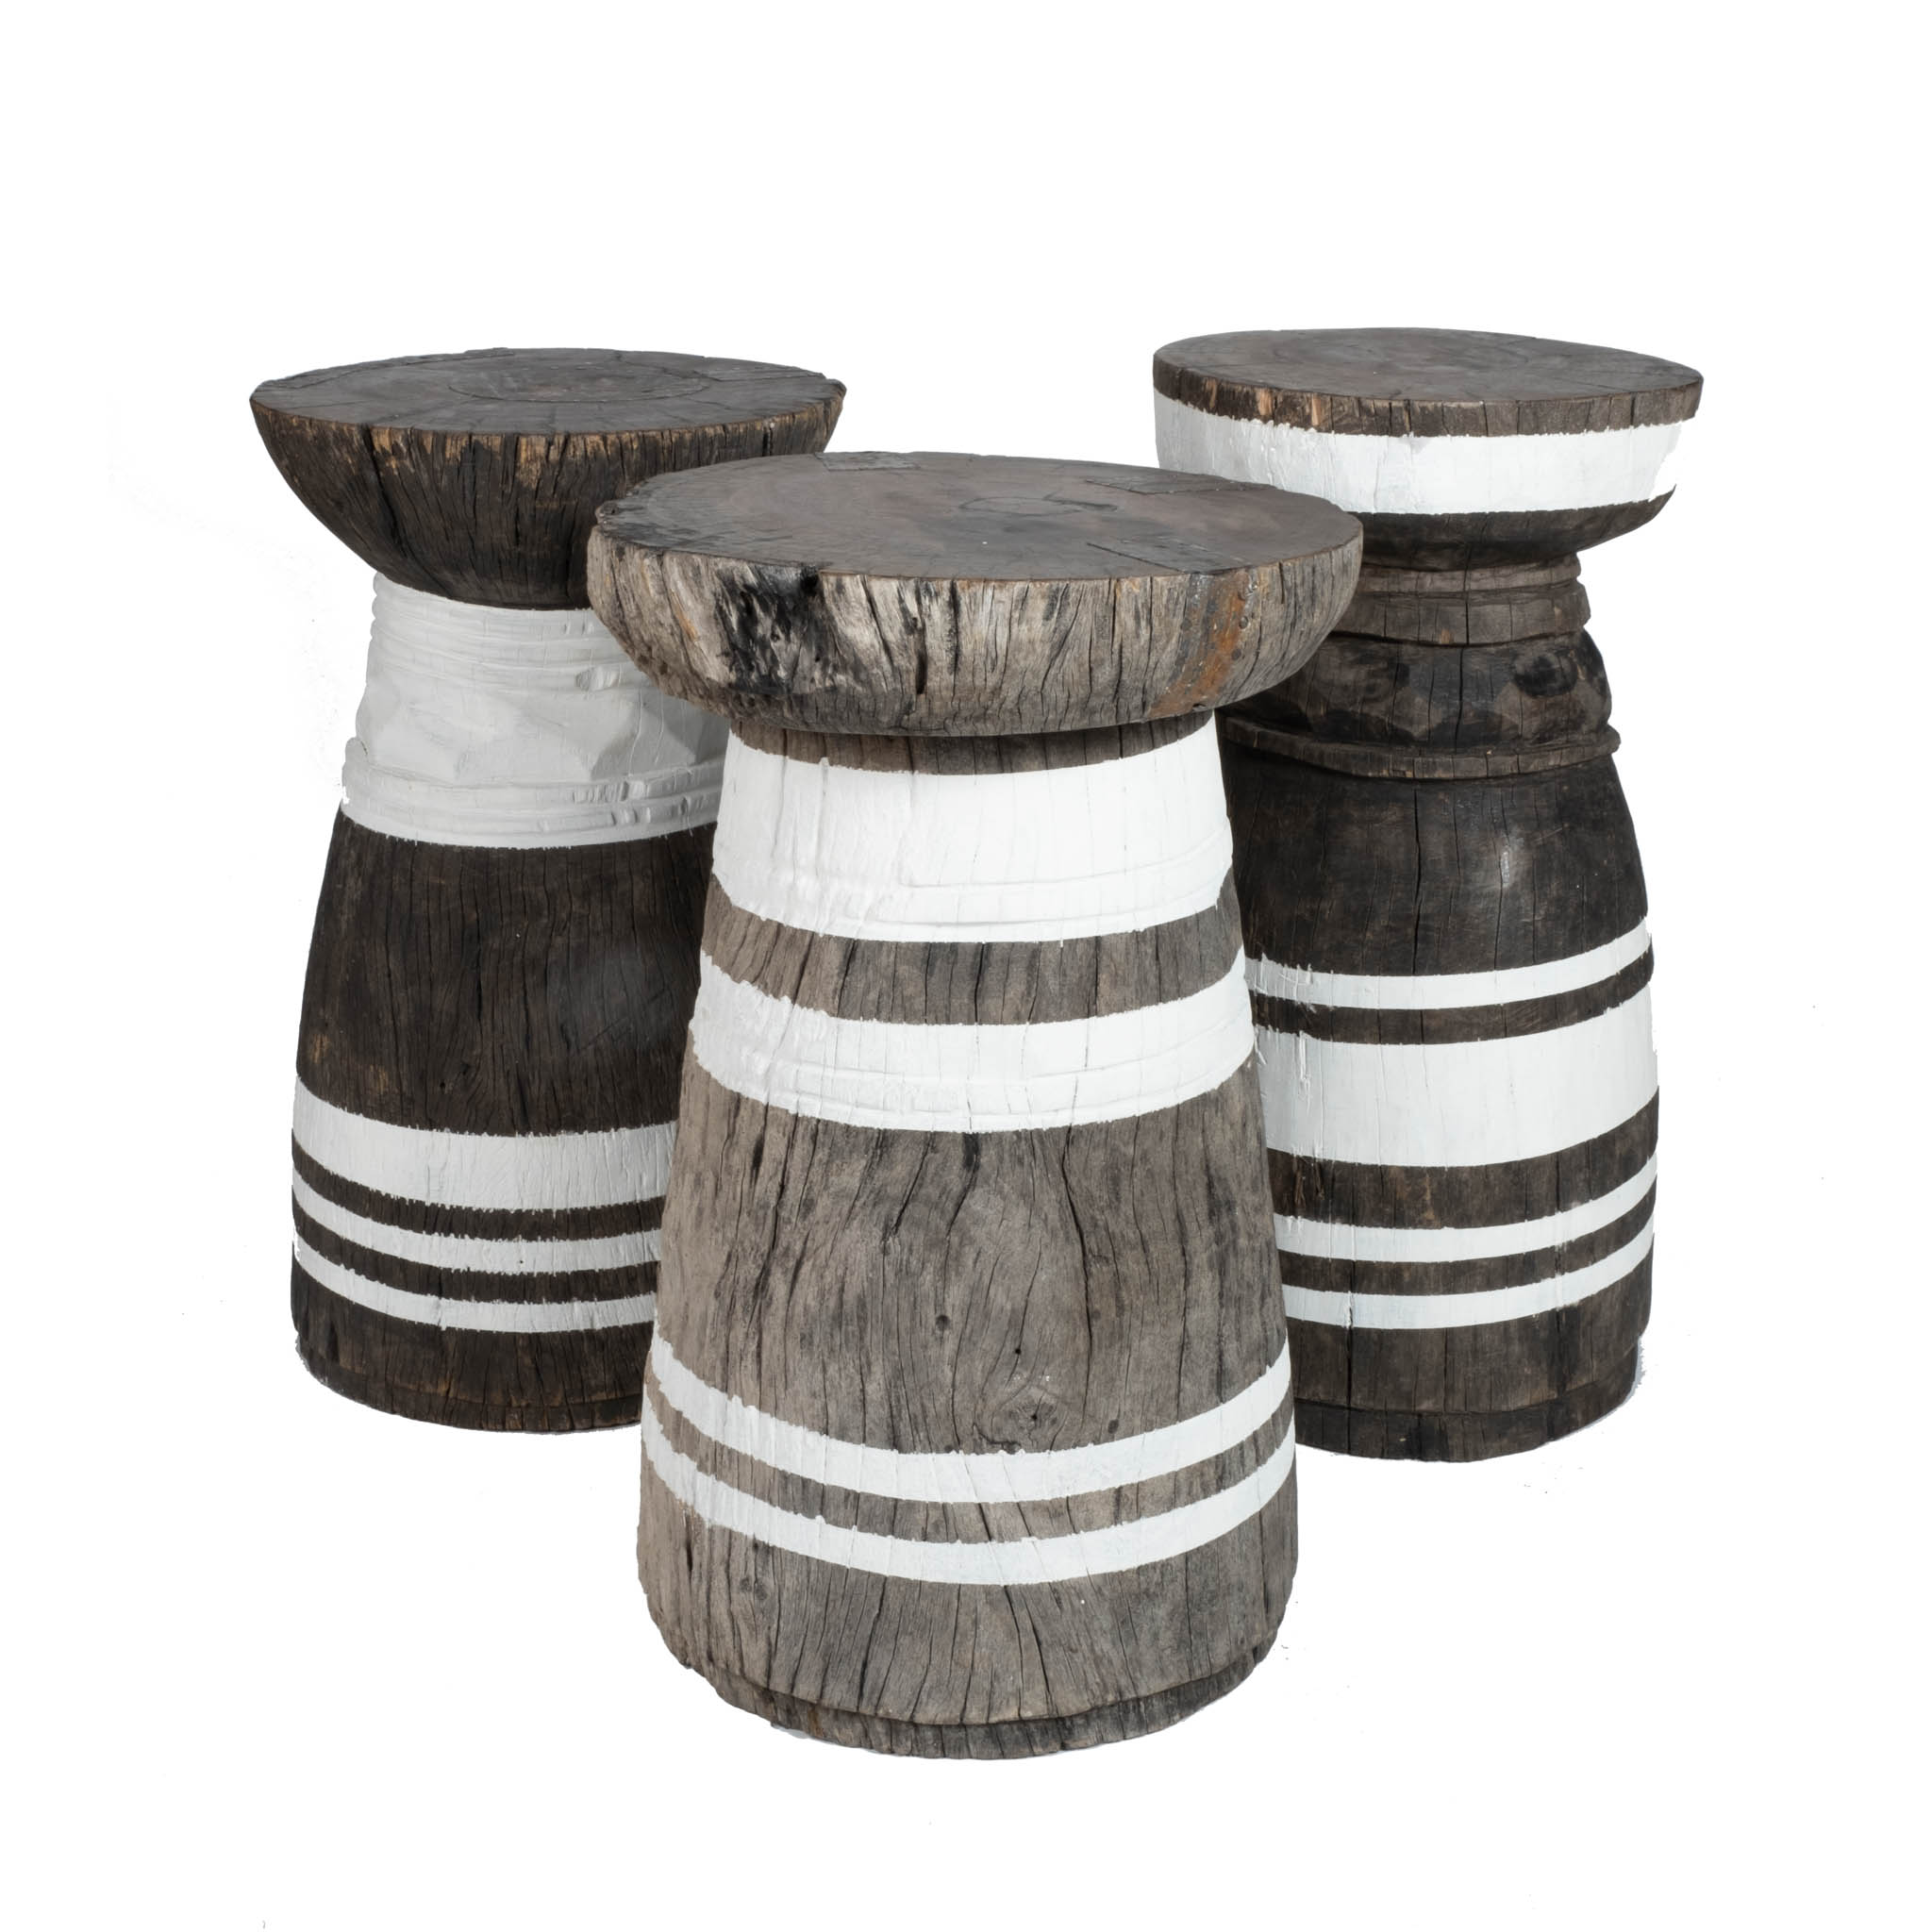 Lozi Mortar Stool